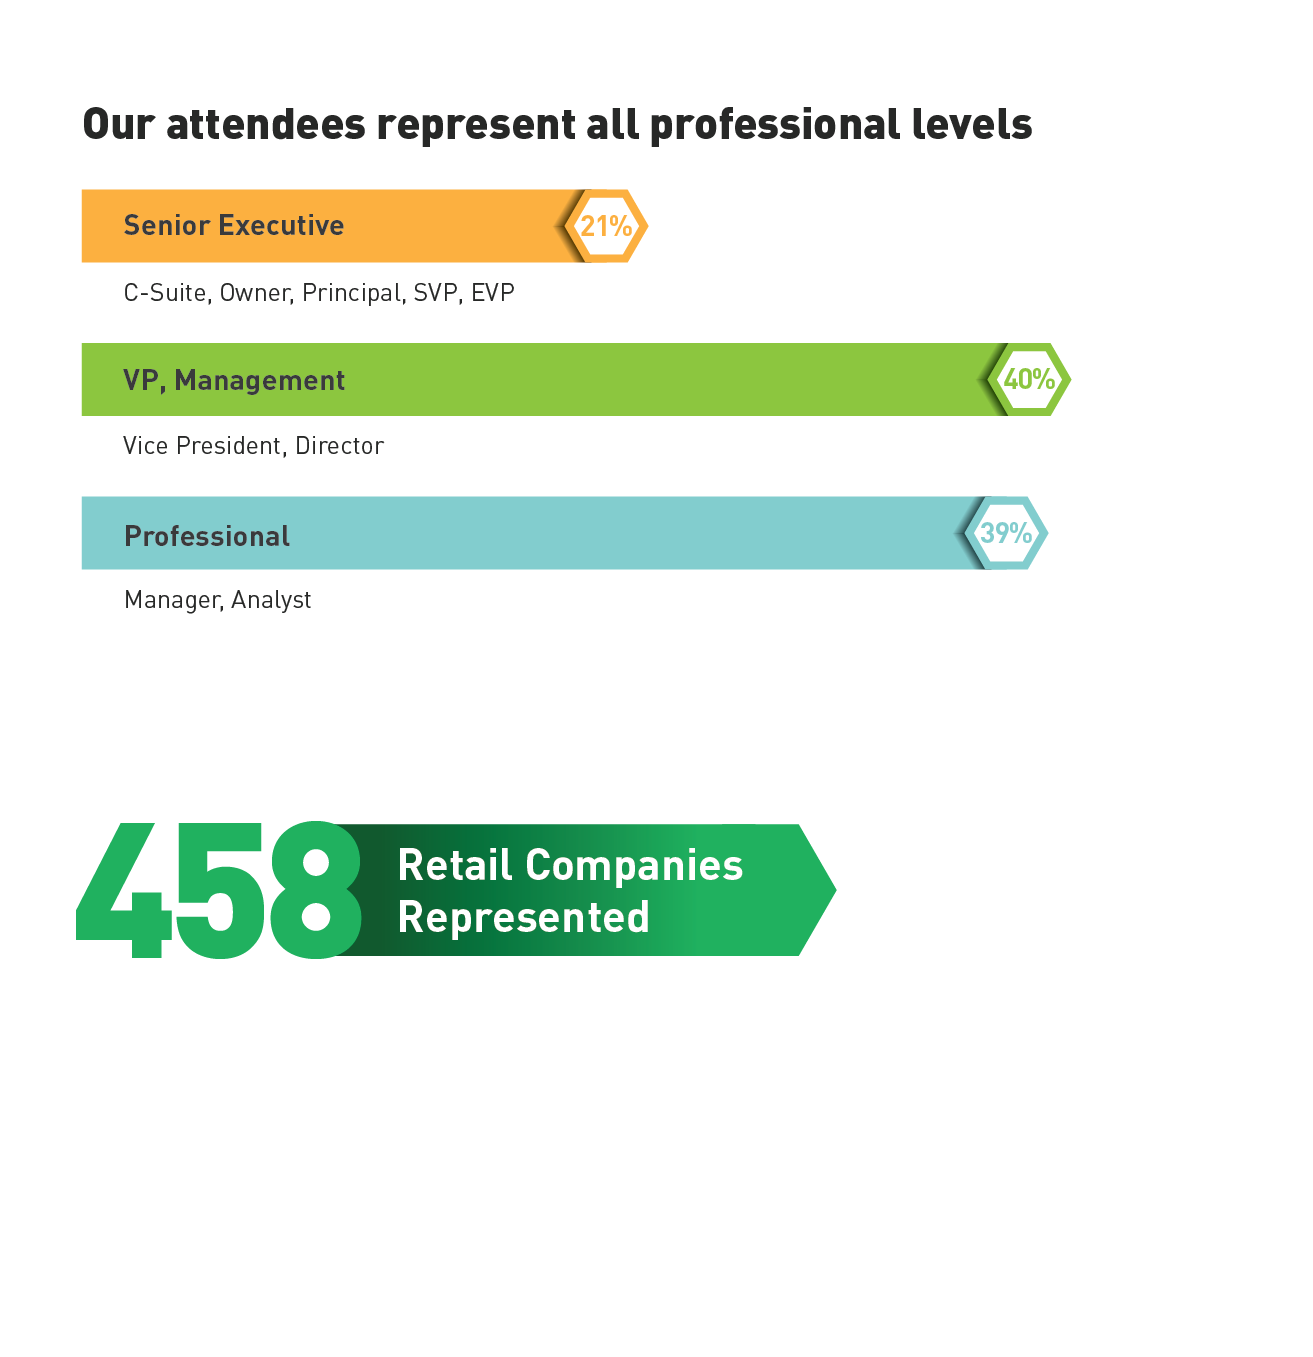 458 retail companies represented. Our attendees represent all professional levels.